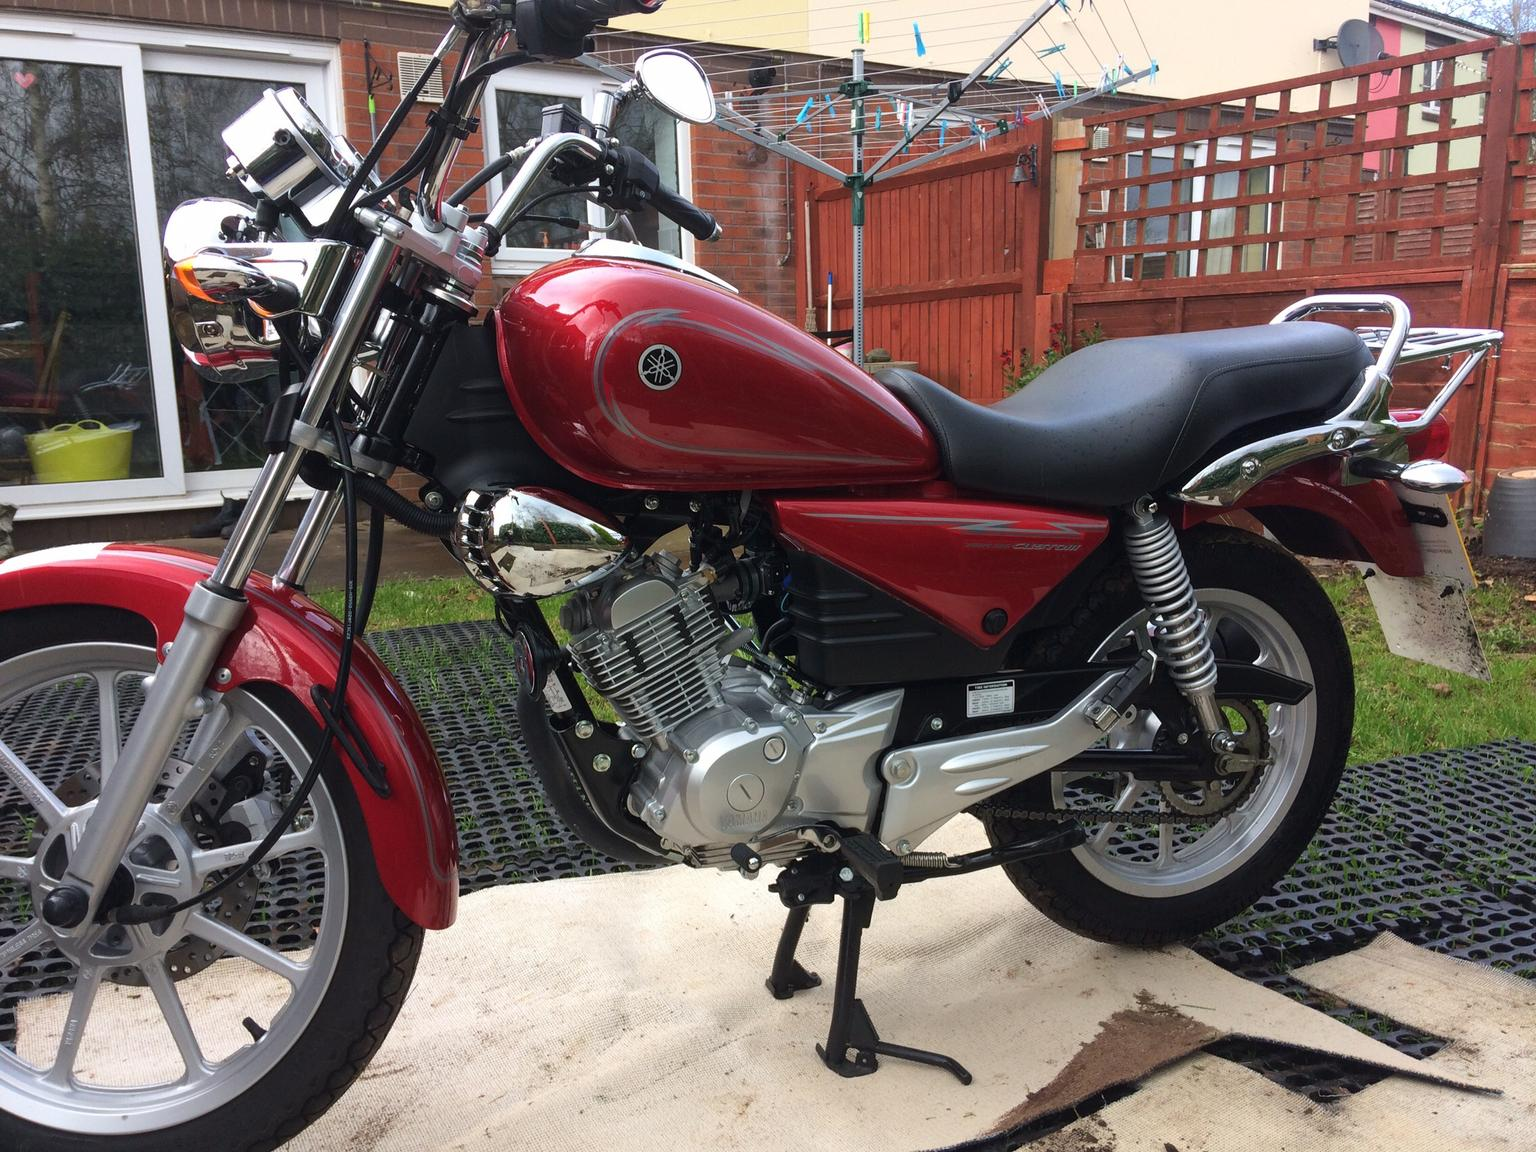 Review of Yamaha YBR 125 YBR 125: pictures, live photos